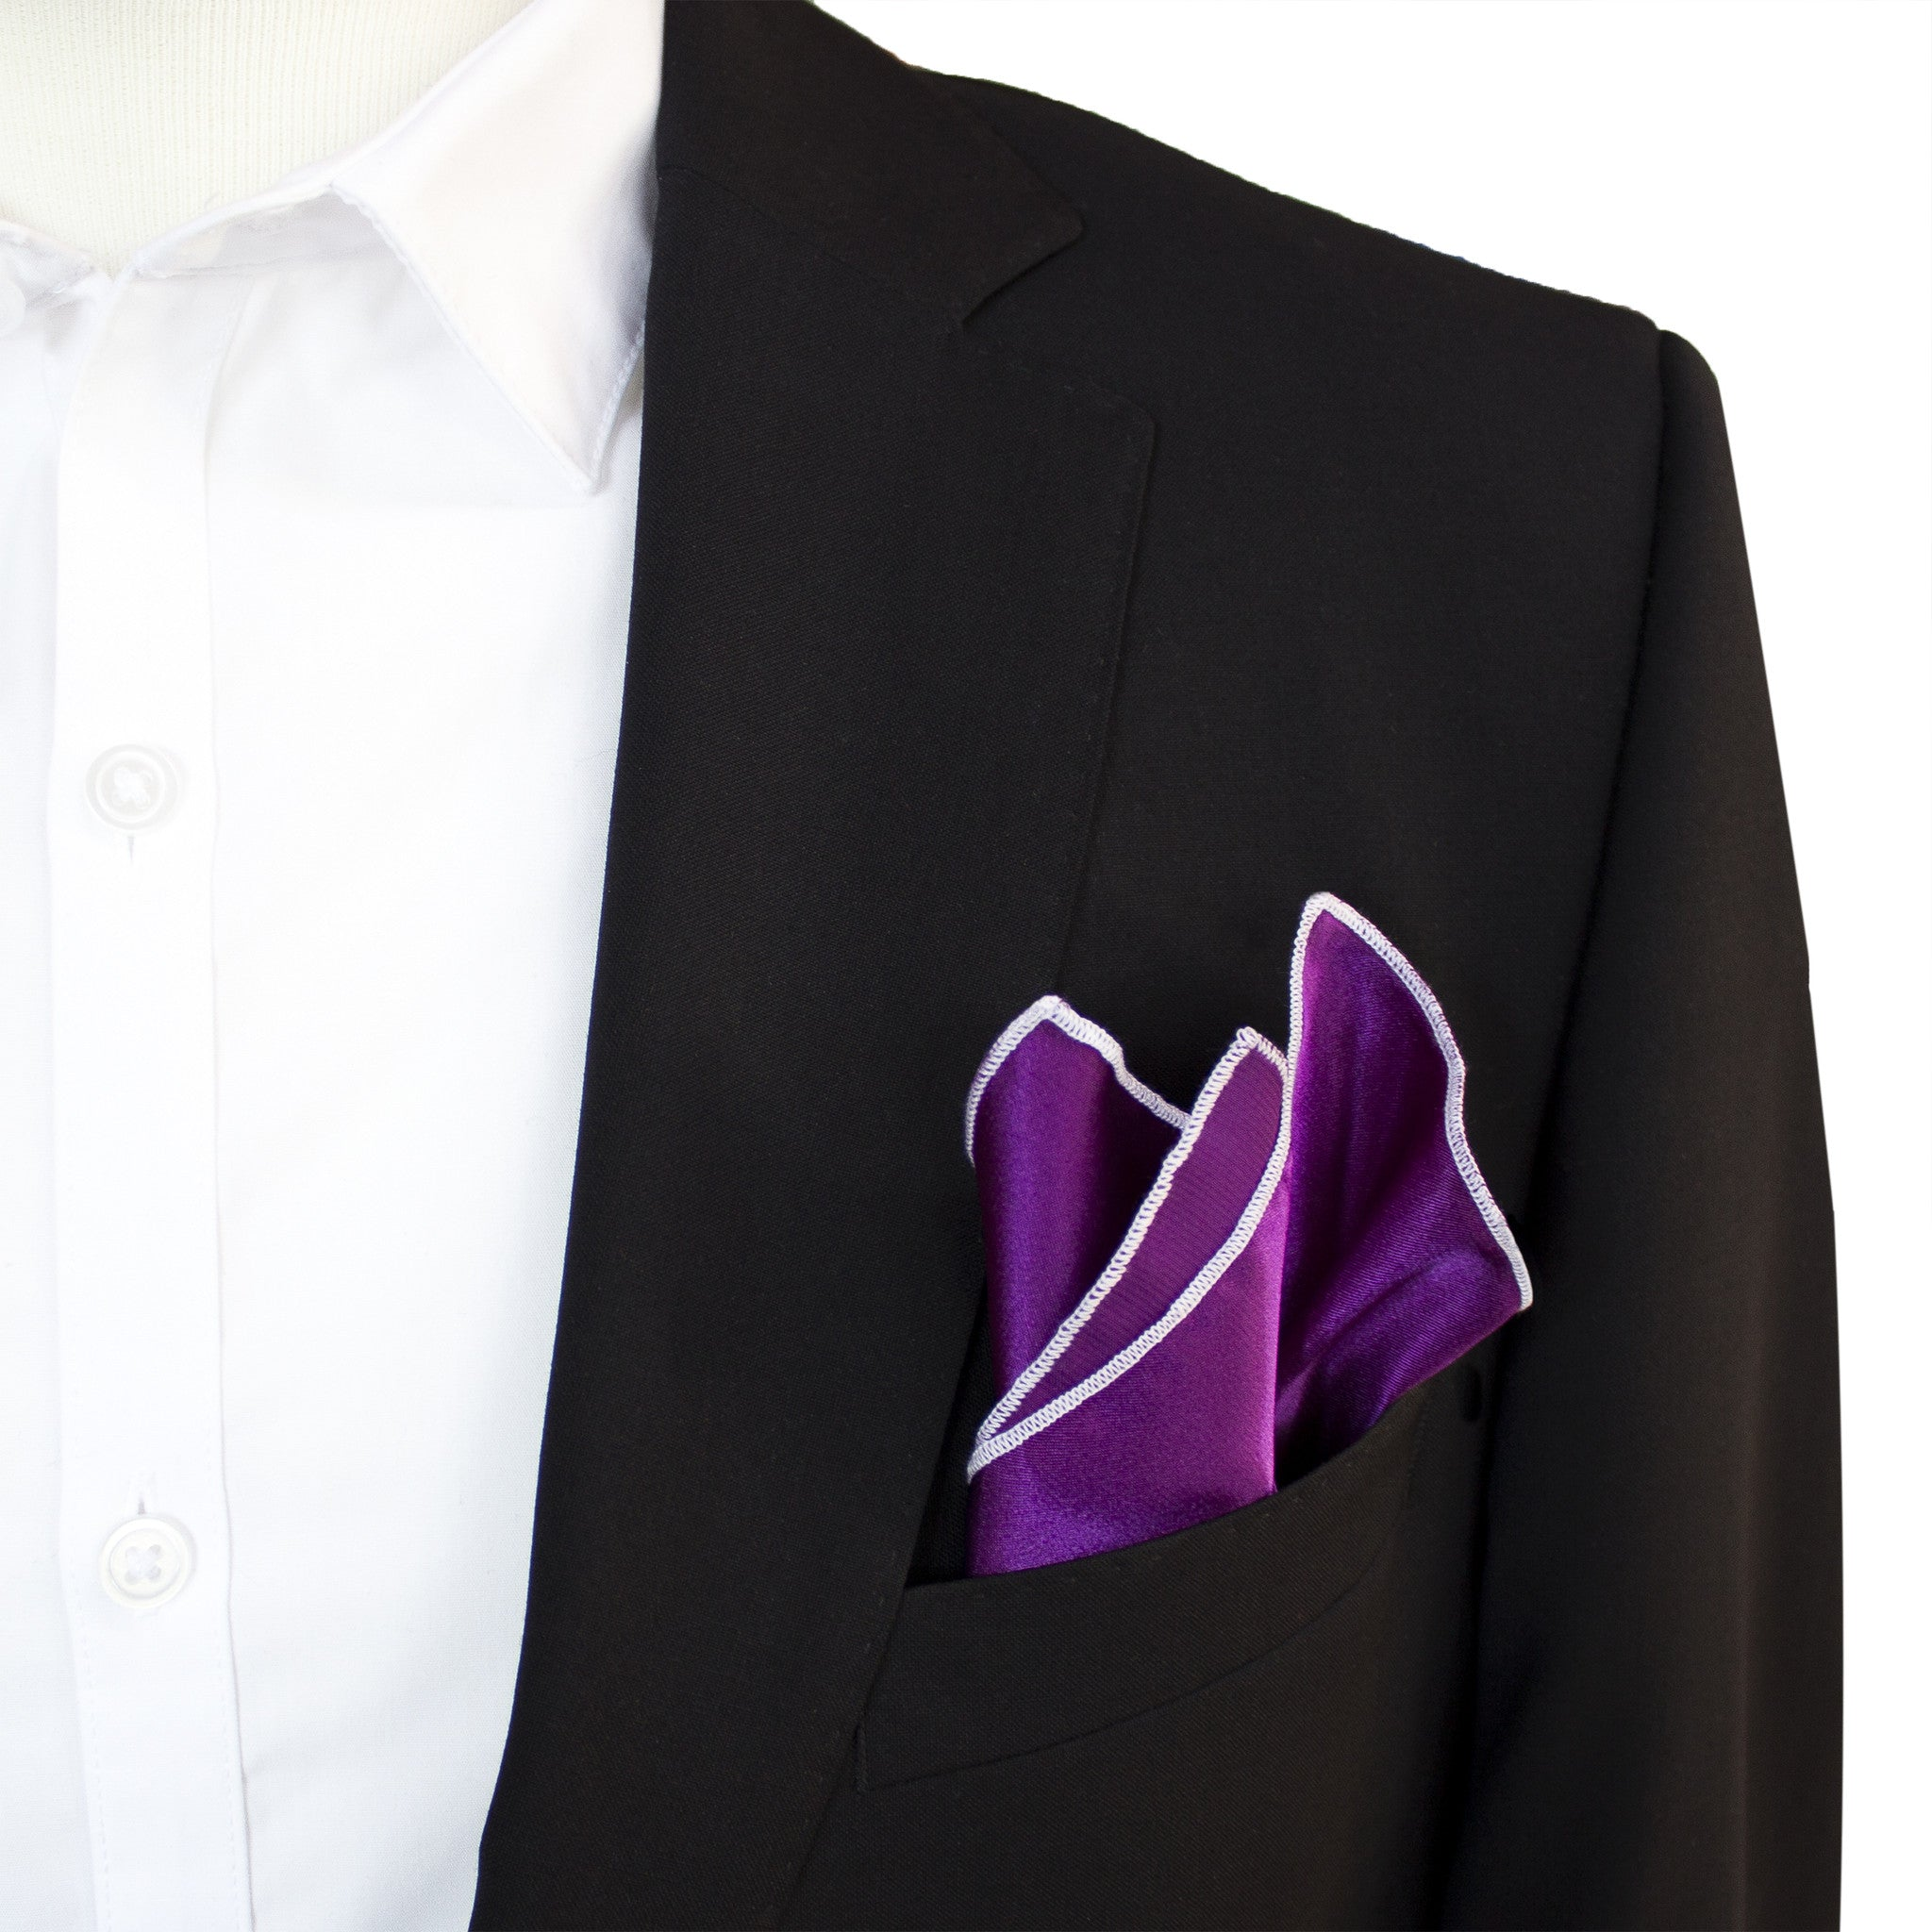 "Buster Purple - Merrow Stitch Pocket Square (11""x11"") - Stolen Riches / CA"